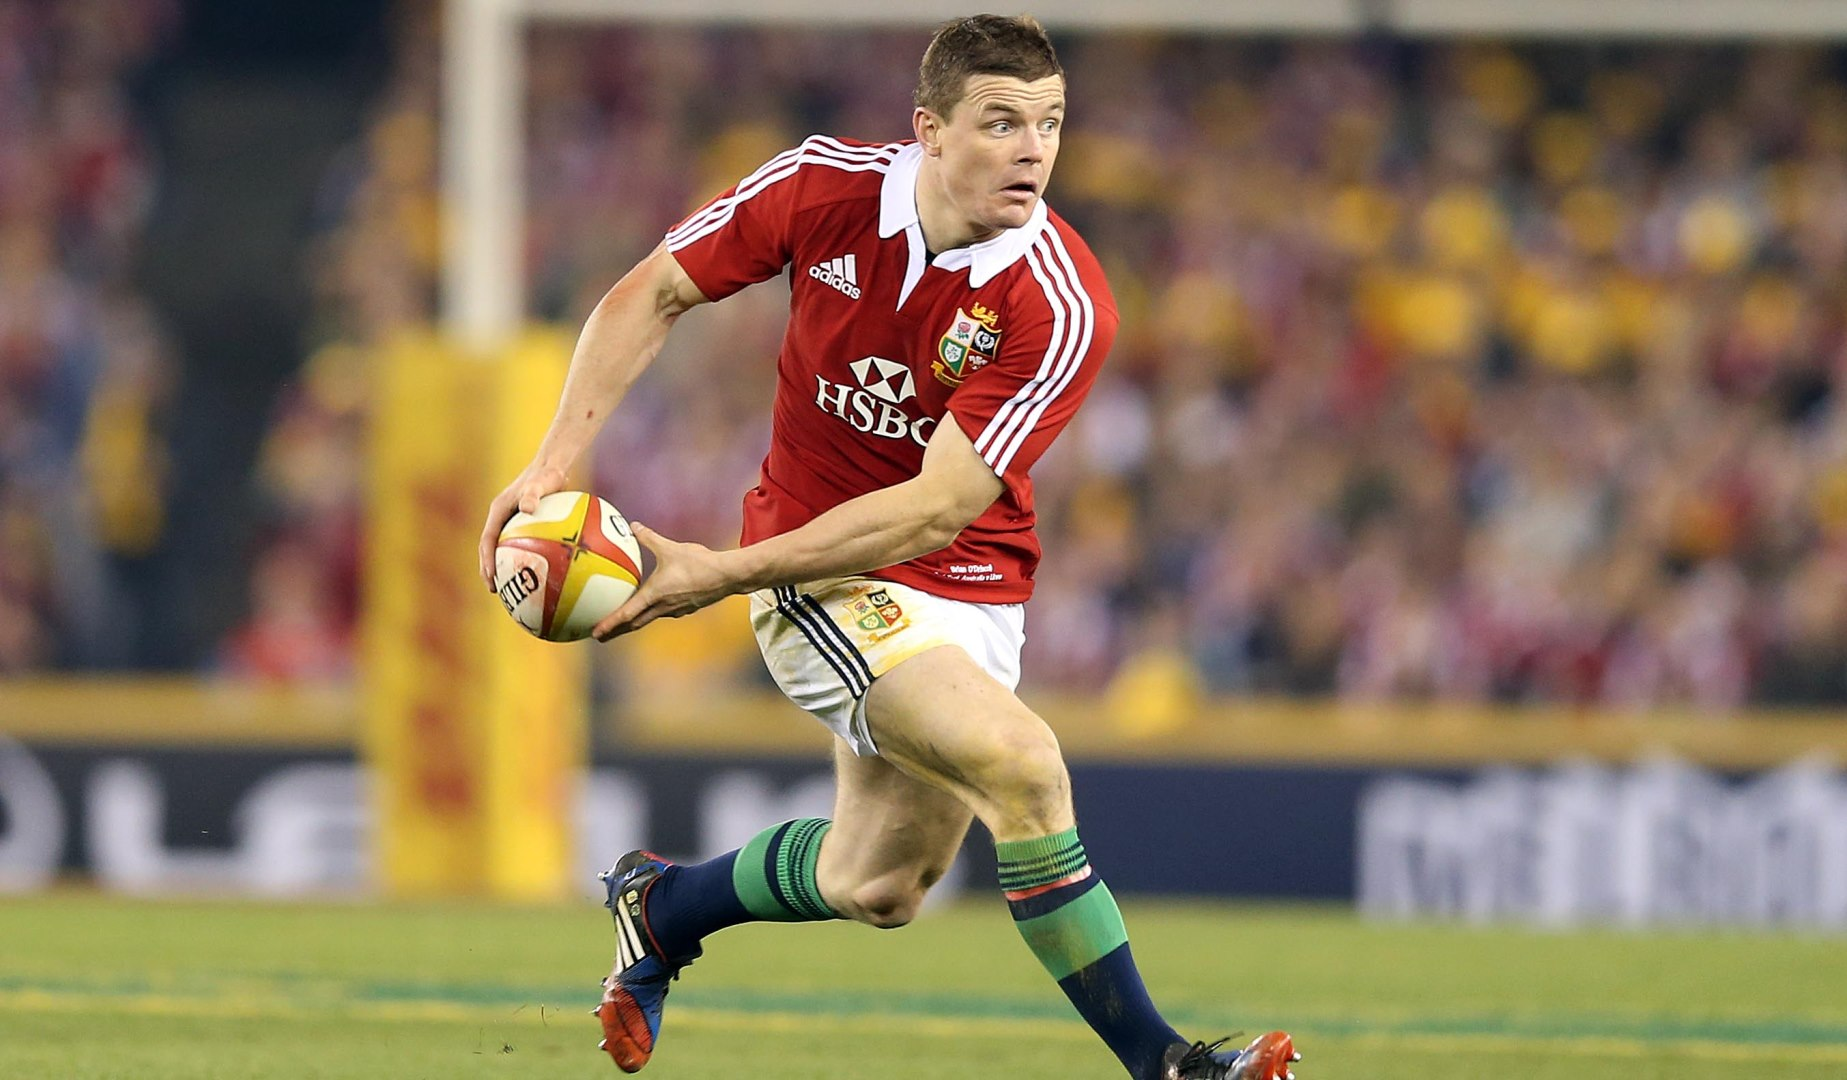 O'Driscoll: Ireland can strike another blow for the Lions